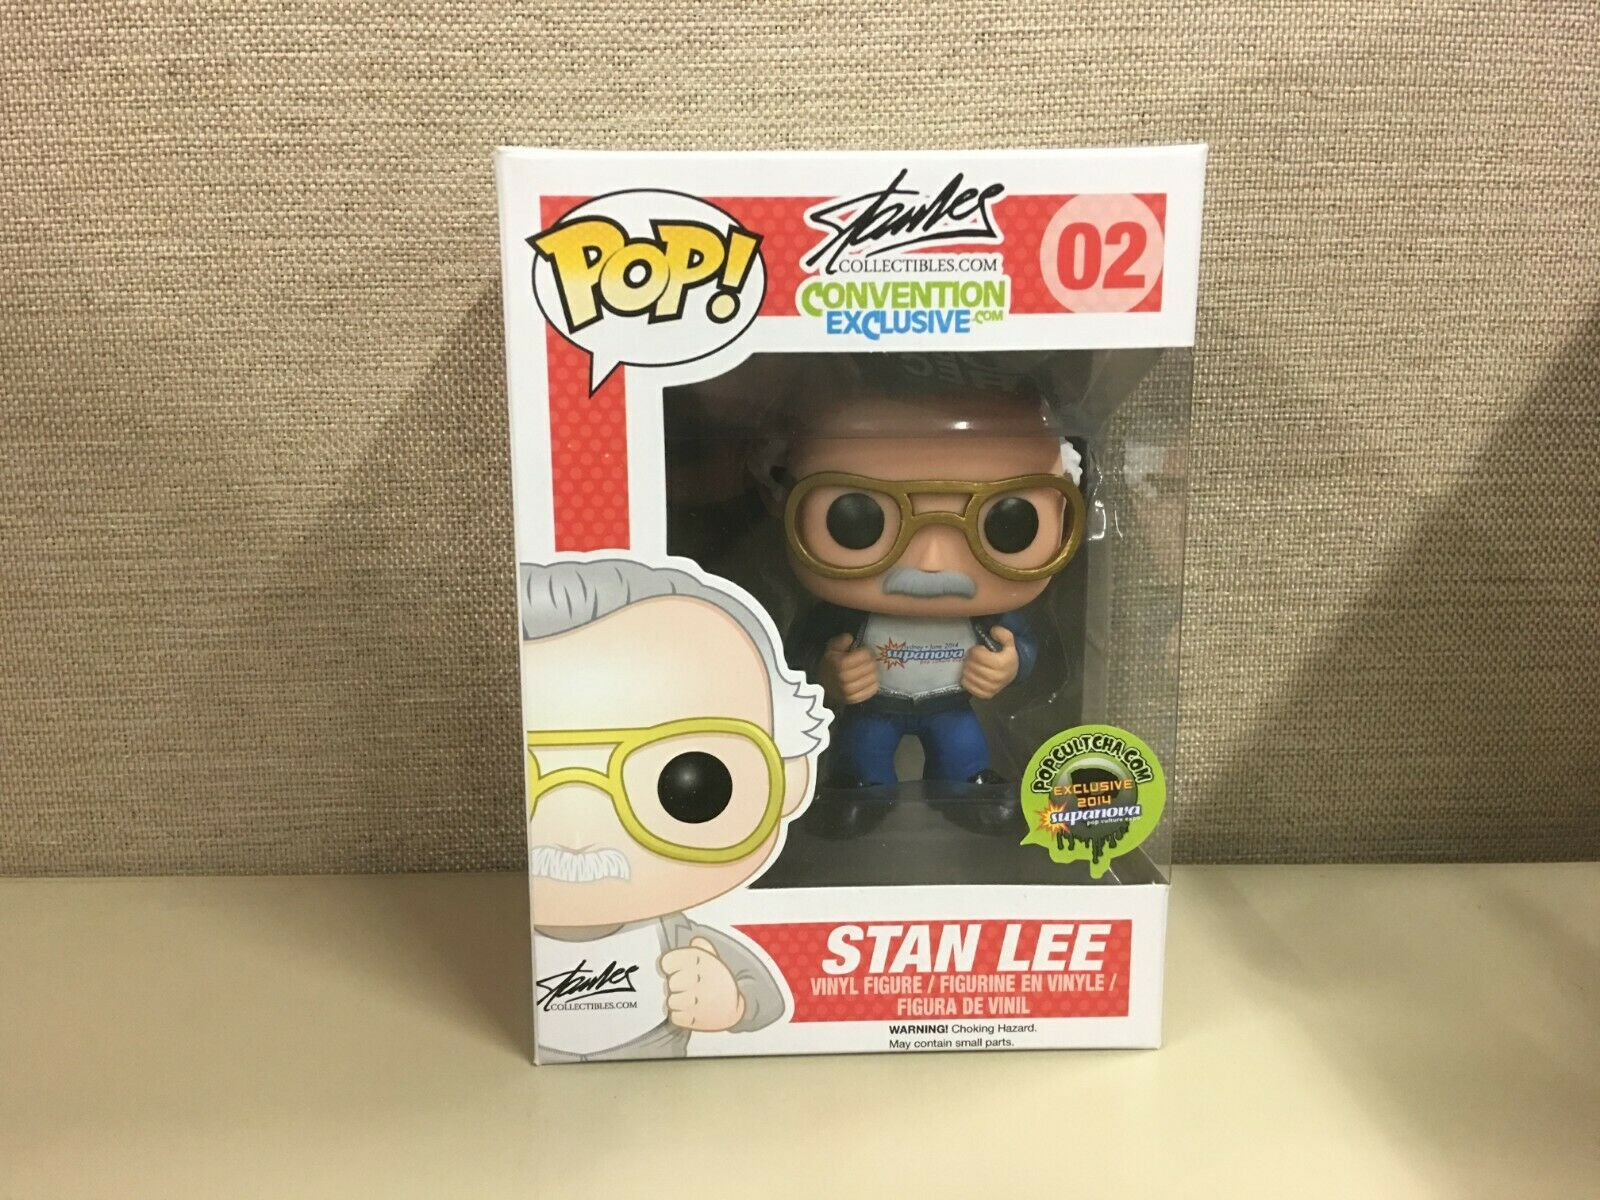 Funko Pop stanleecollectibles. com Stan Lee popcultcha 02 2014 exclusivo supanova